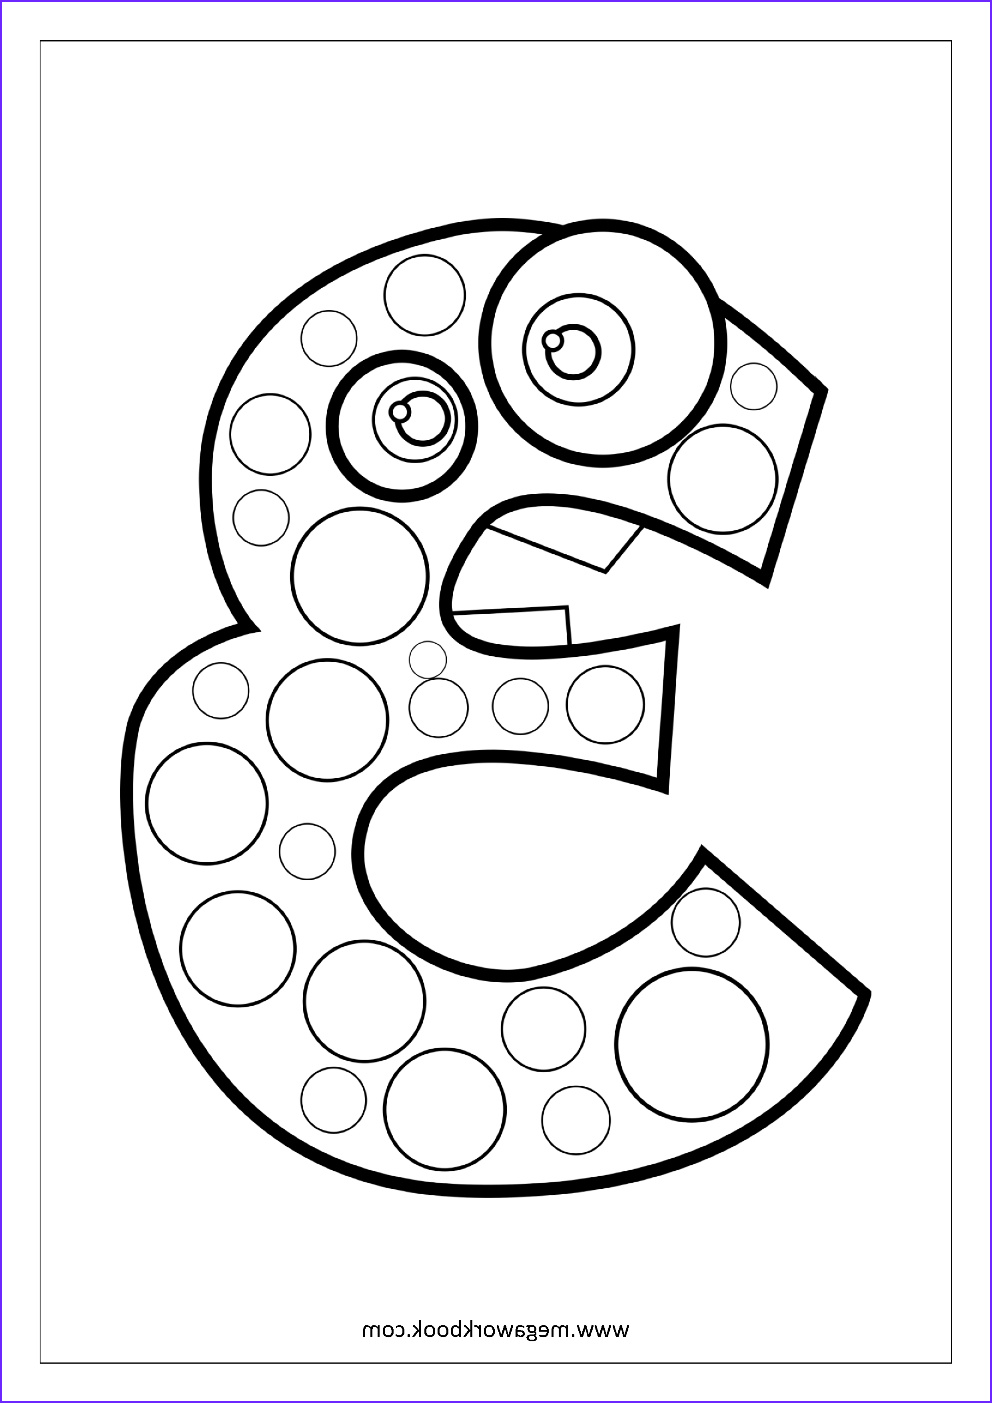 Coloring Pages Free Inspirational Gallery Free Coloring Sheets Miscellaneous Megaworkbook